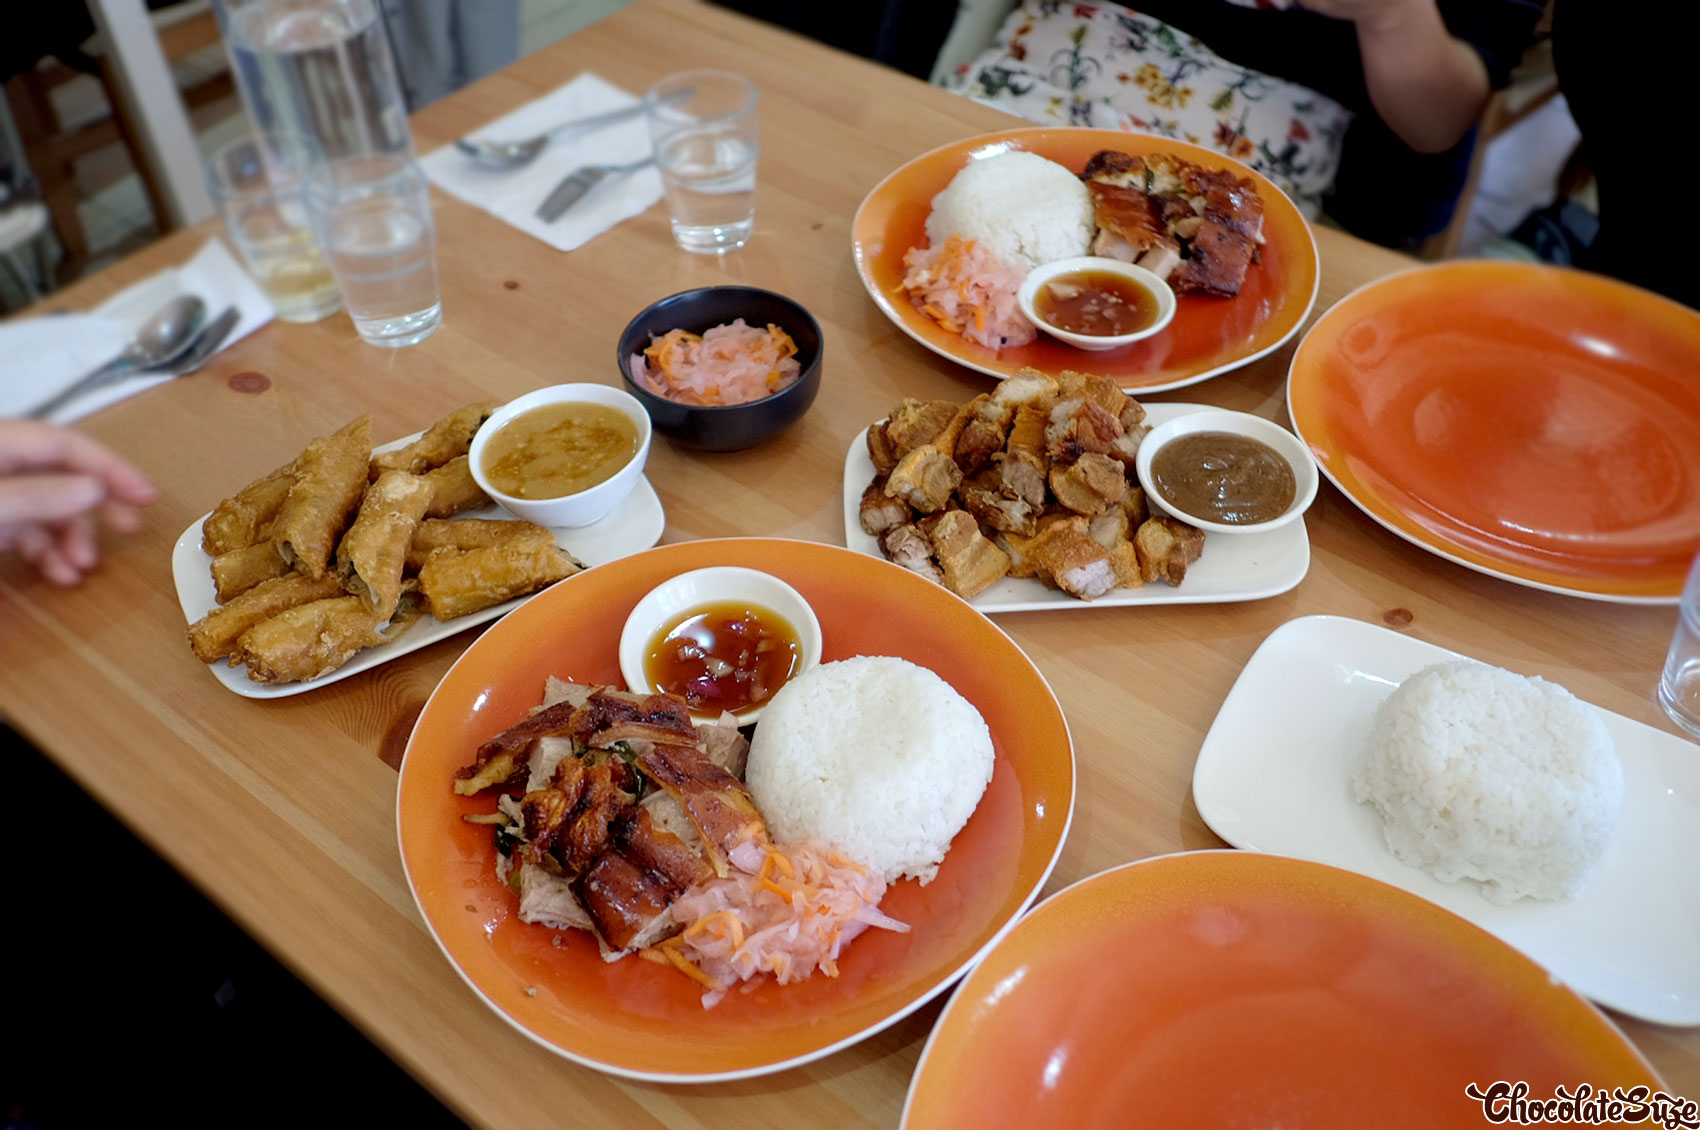 Table of food at Sydney Cebu Lechon, Newtown